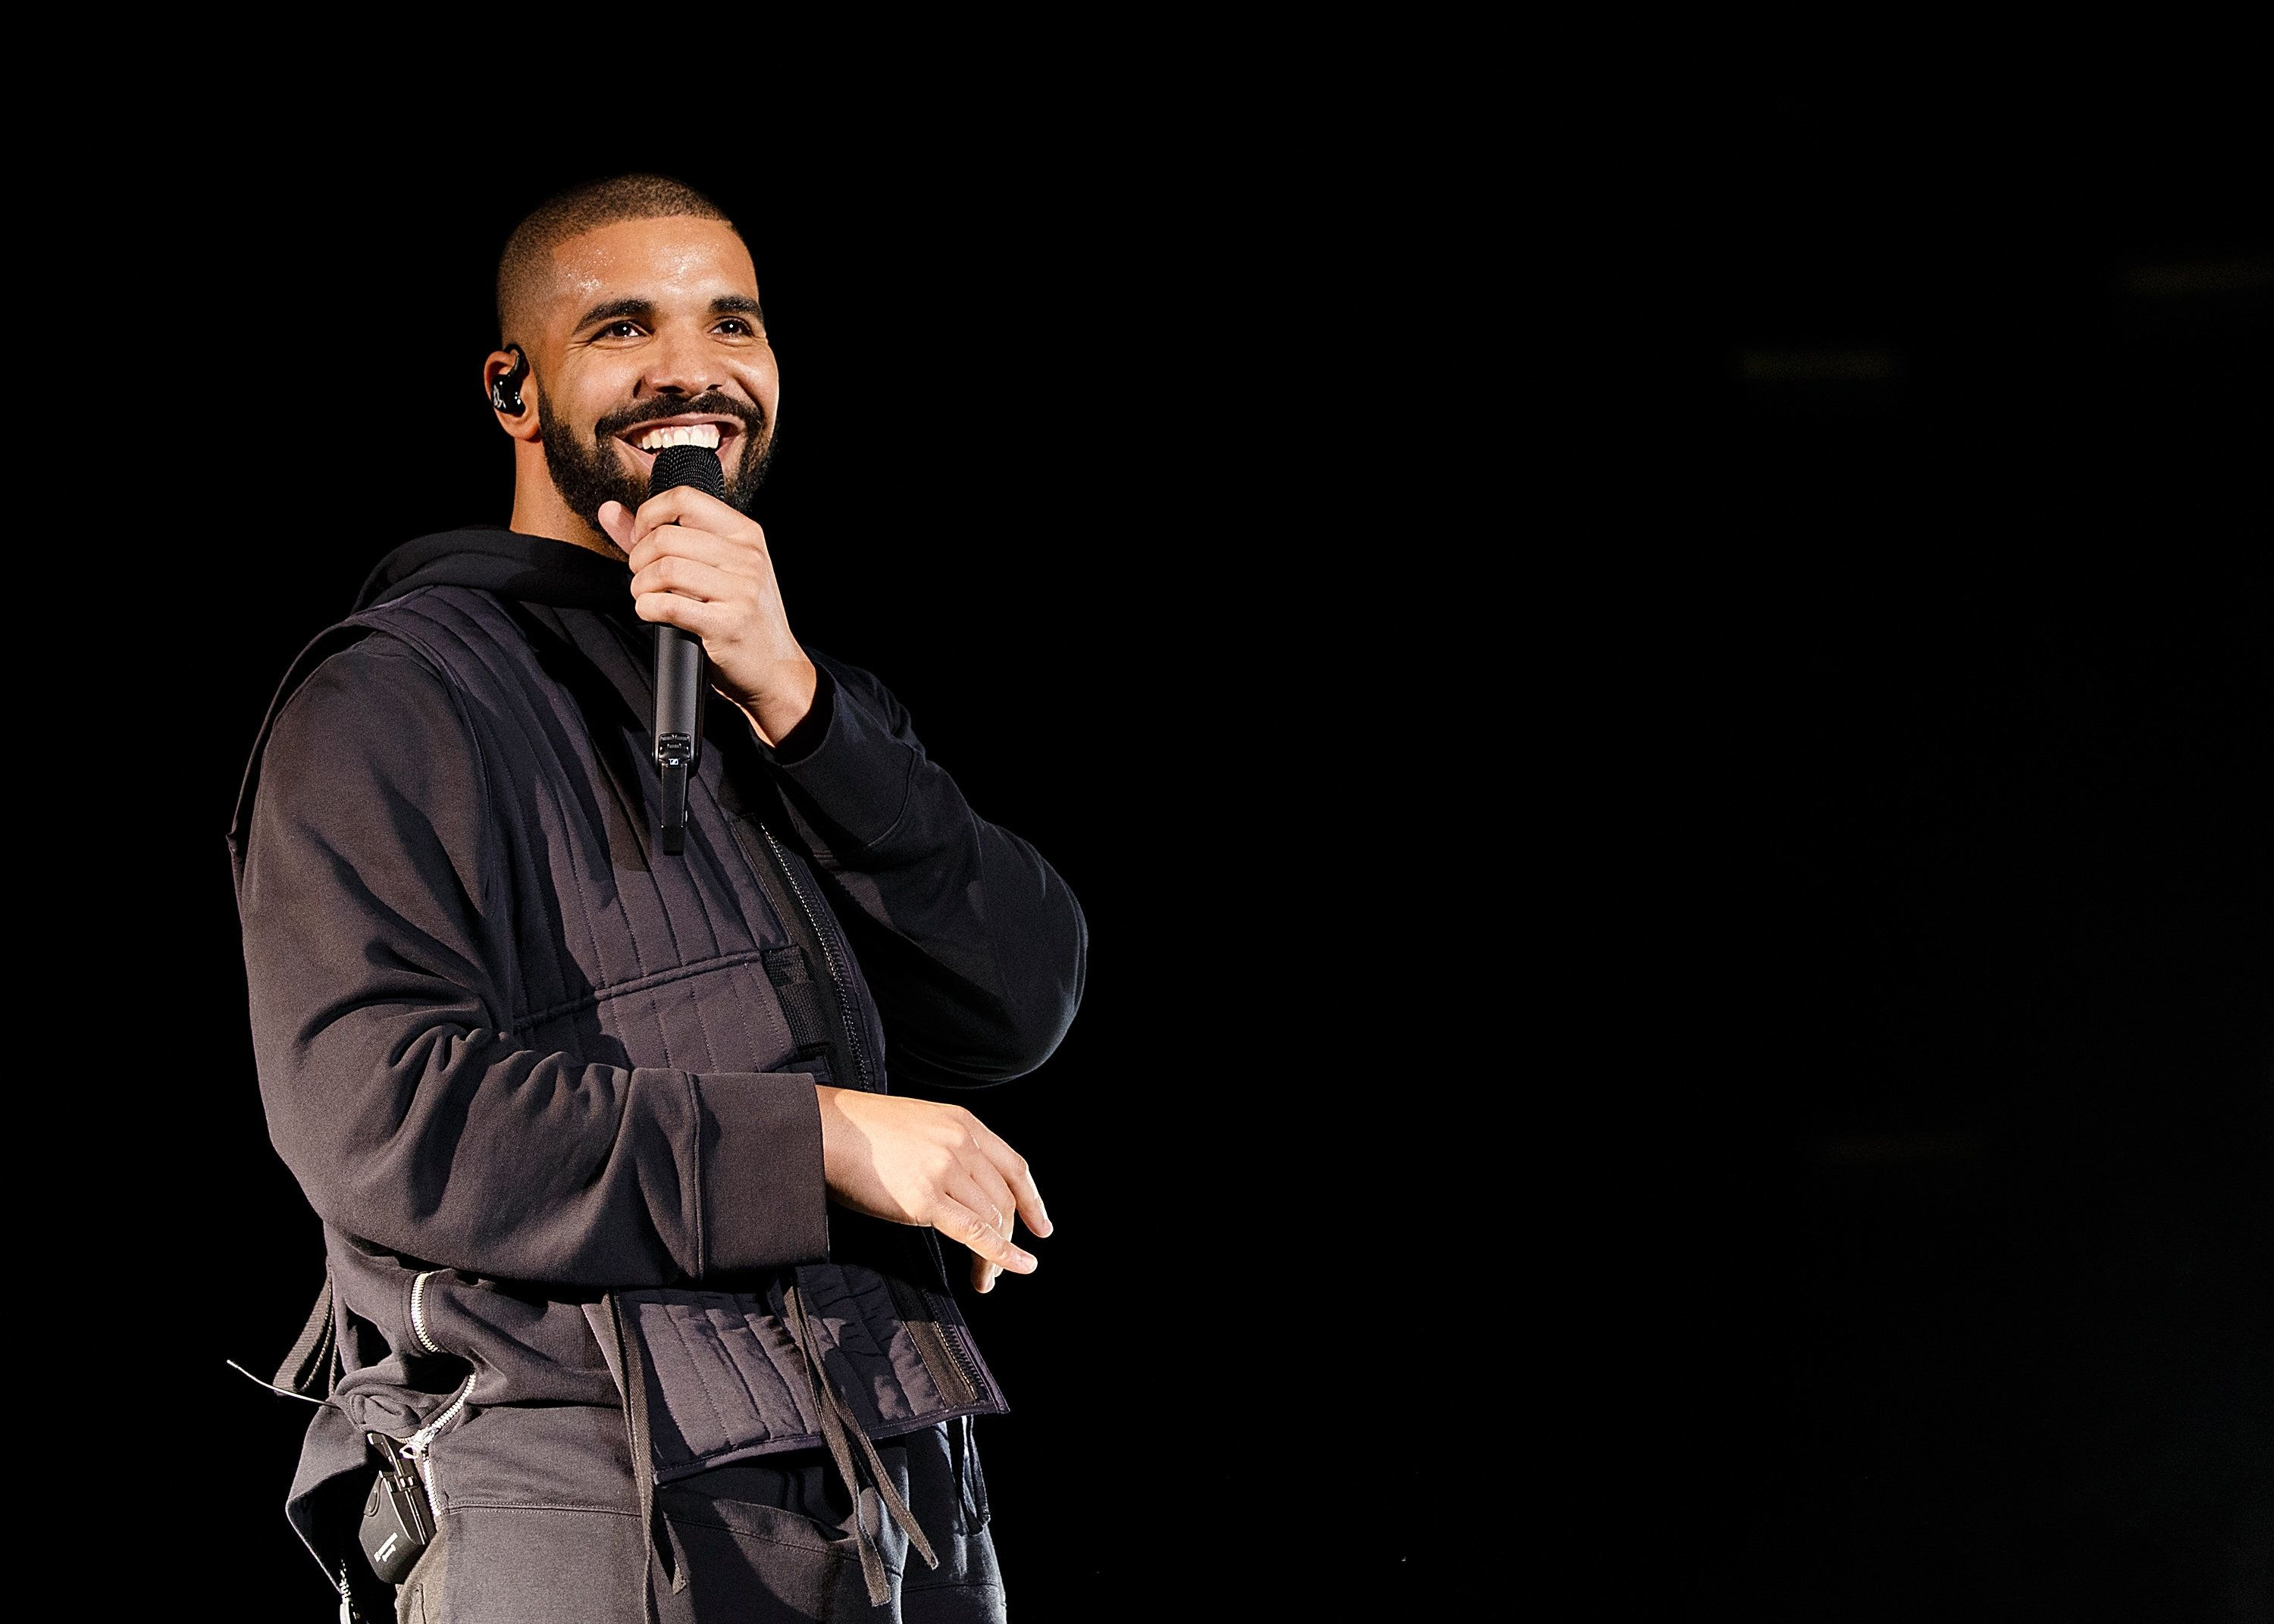 Drake performs at the Squamish Valley Music Festival in